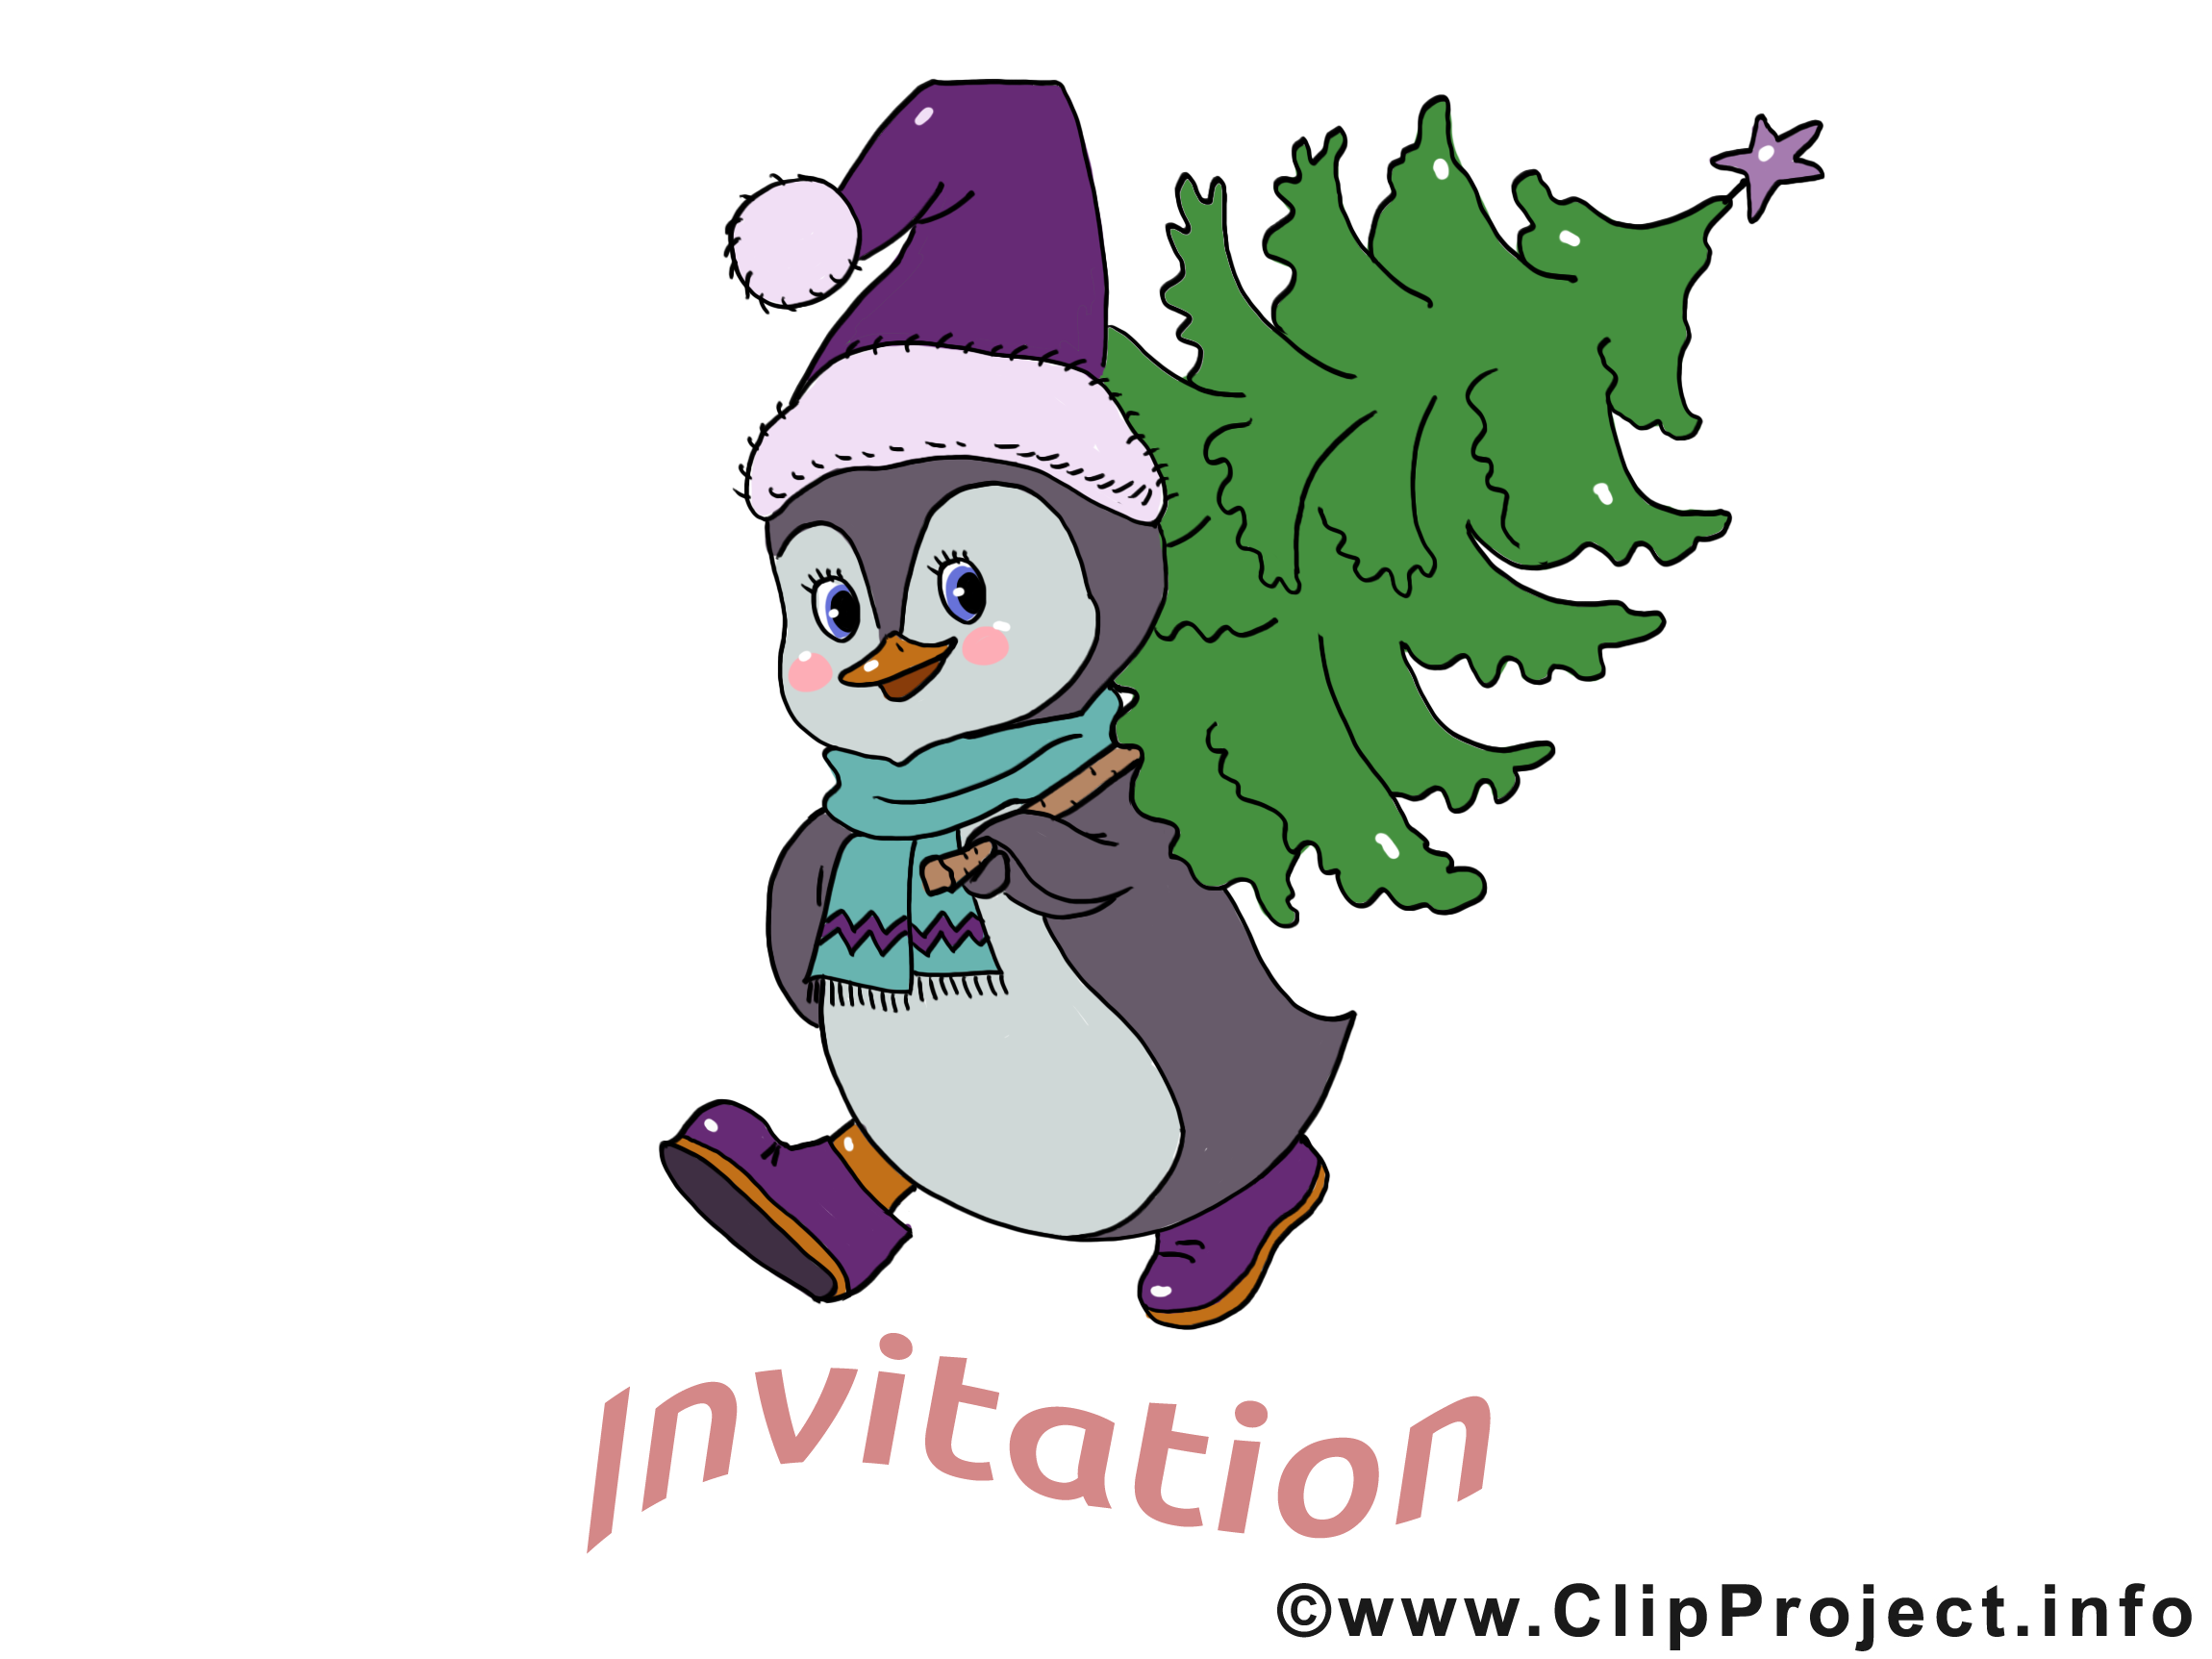 Pingouin dessins gratuits invitation clipart invitations dessin picture image graphic - Dessins gratuits a telecharger ...